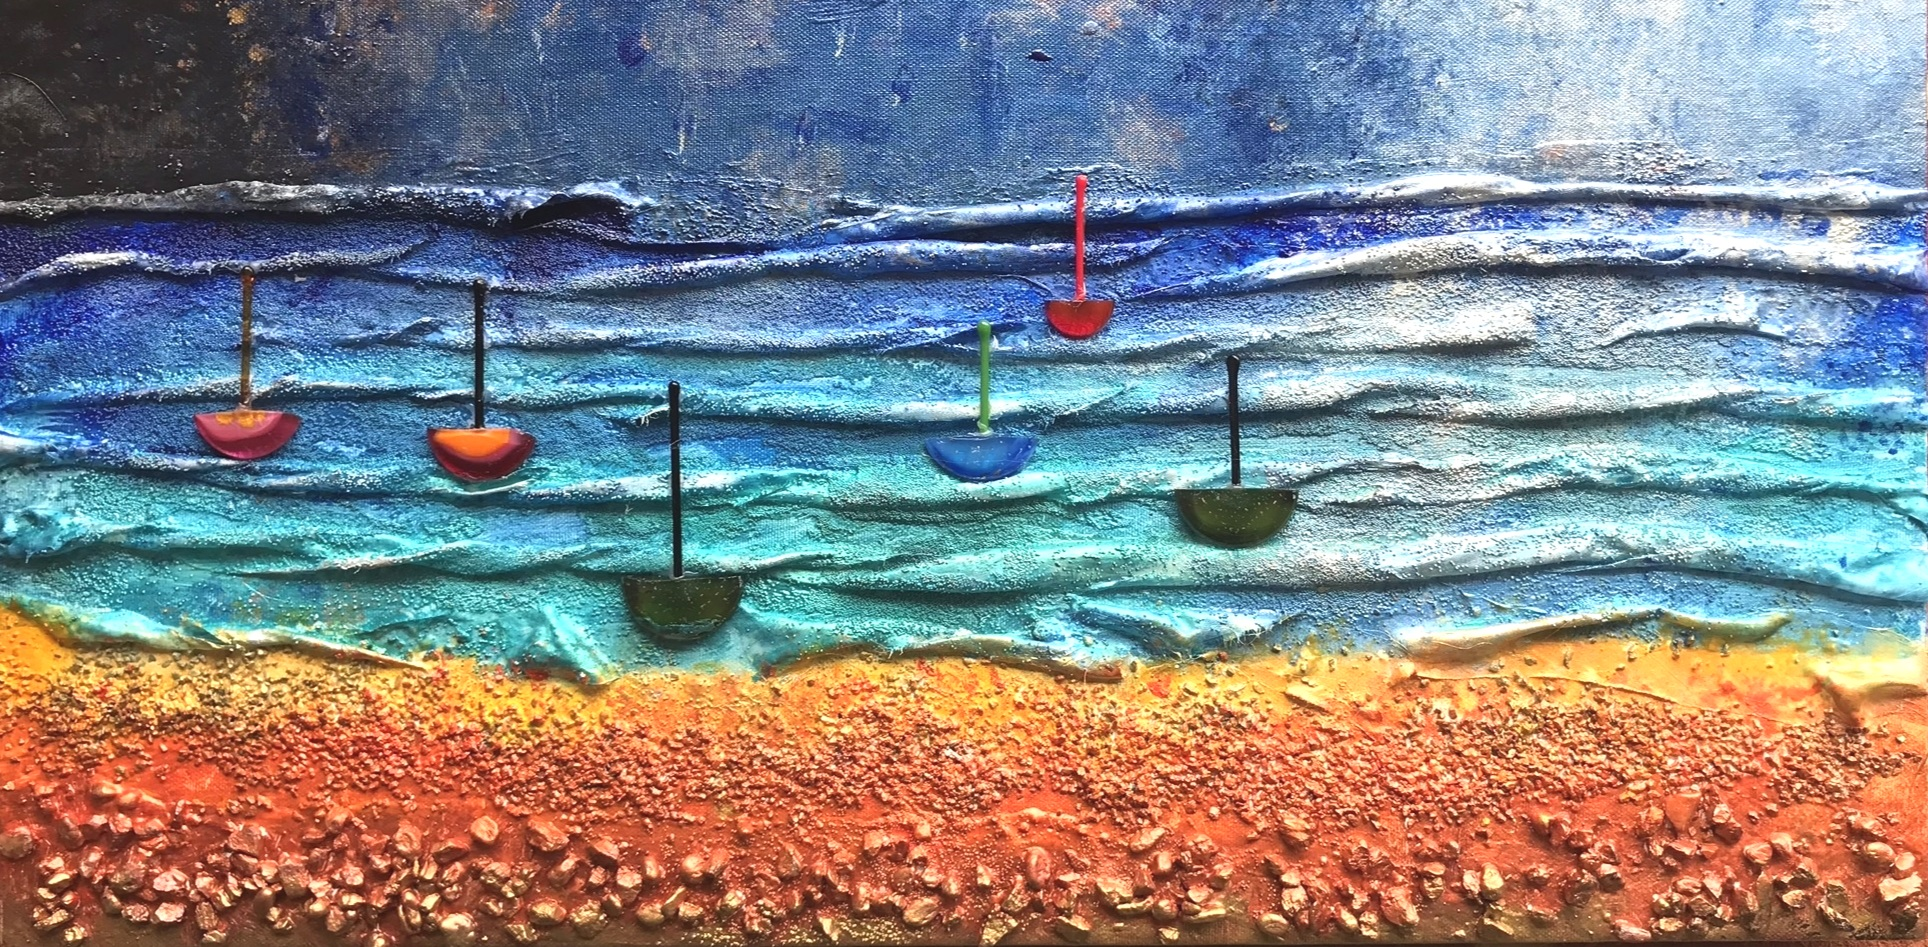 Night-time Beach and Boats 2018 Sold